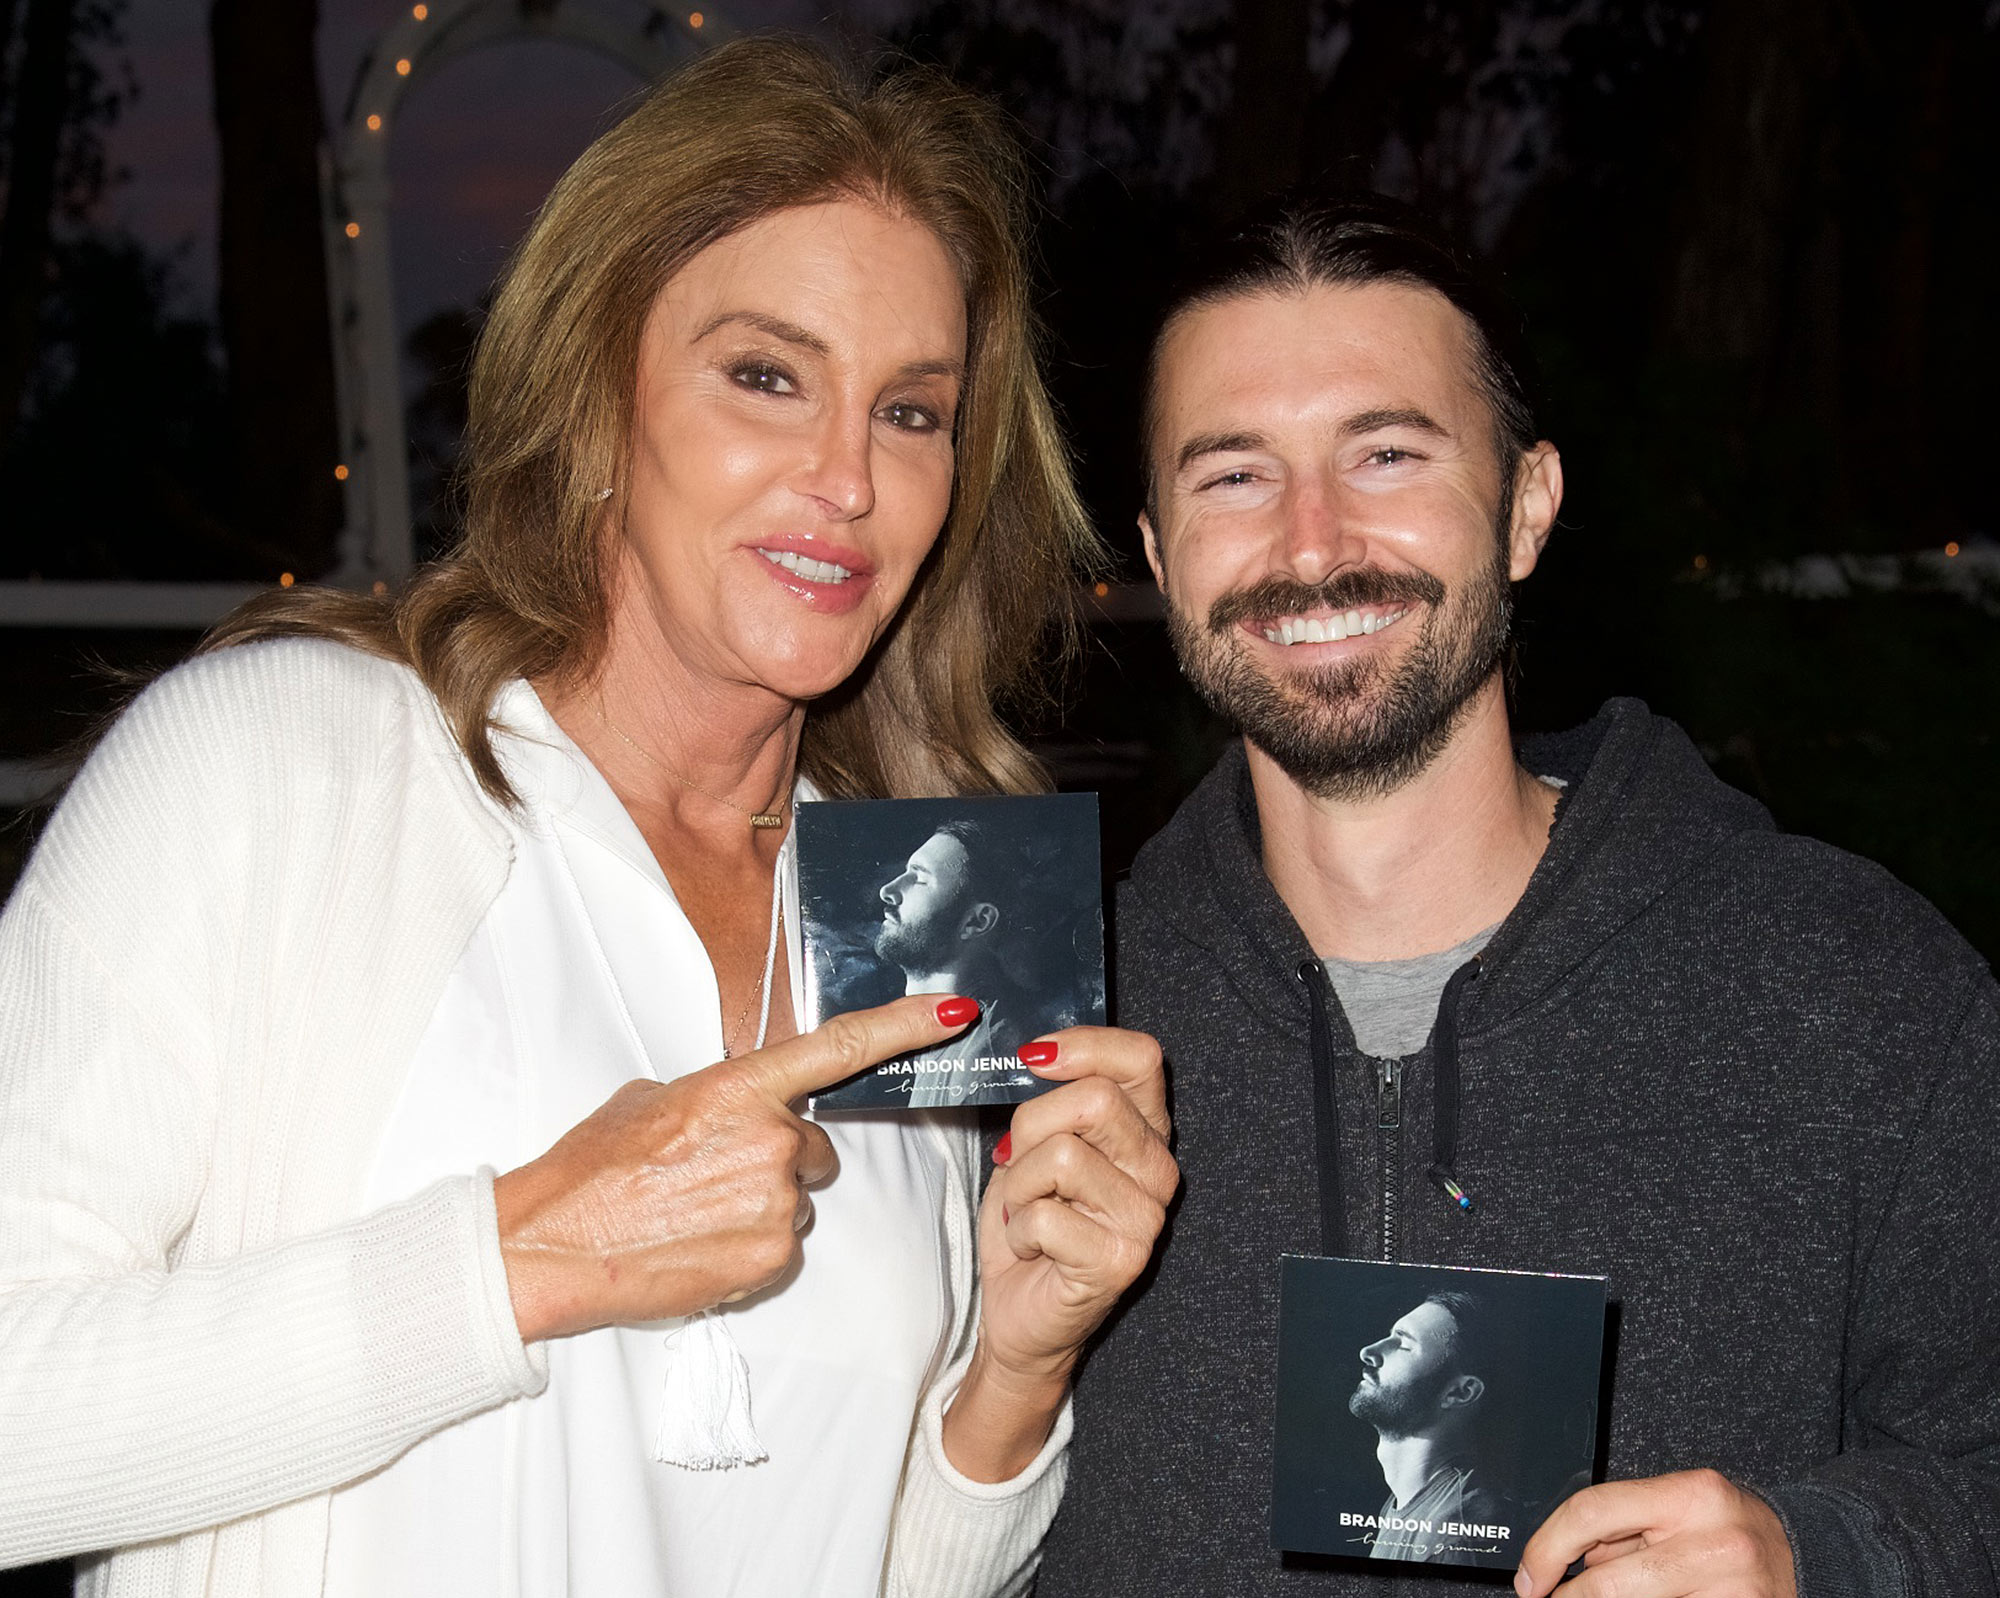 Brandon Jenner and Caitlyn Jenner